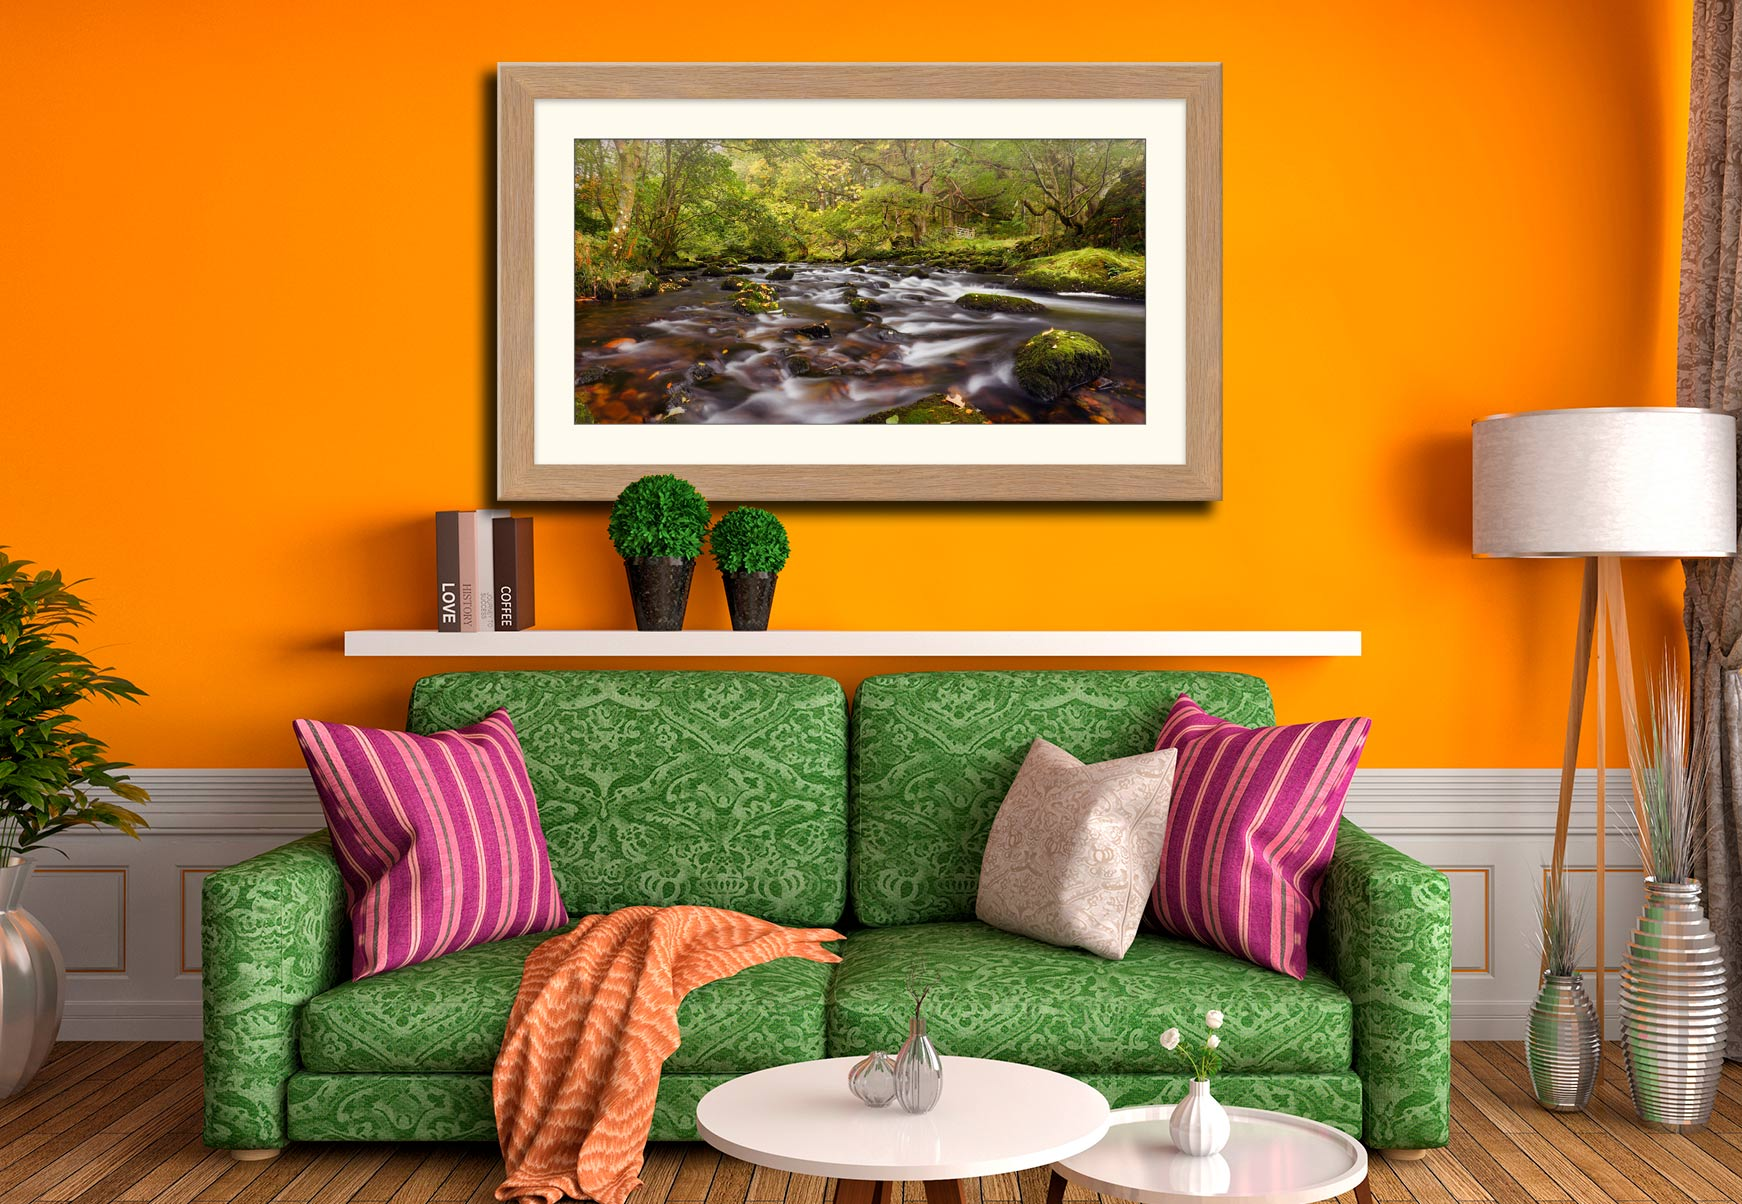 Start of Autumn River Rothay - Framed Print with Mount on Wall